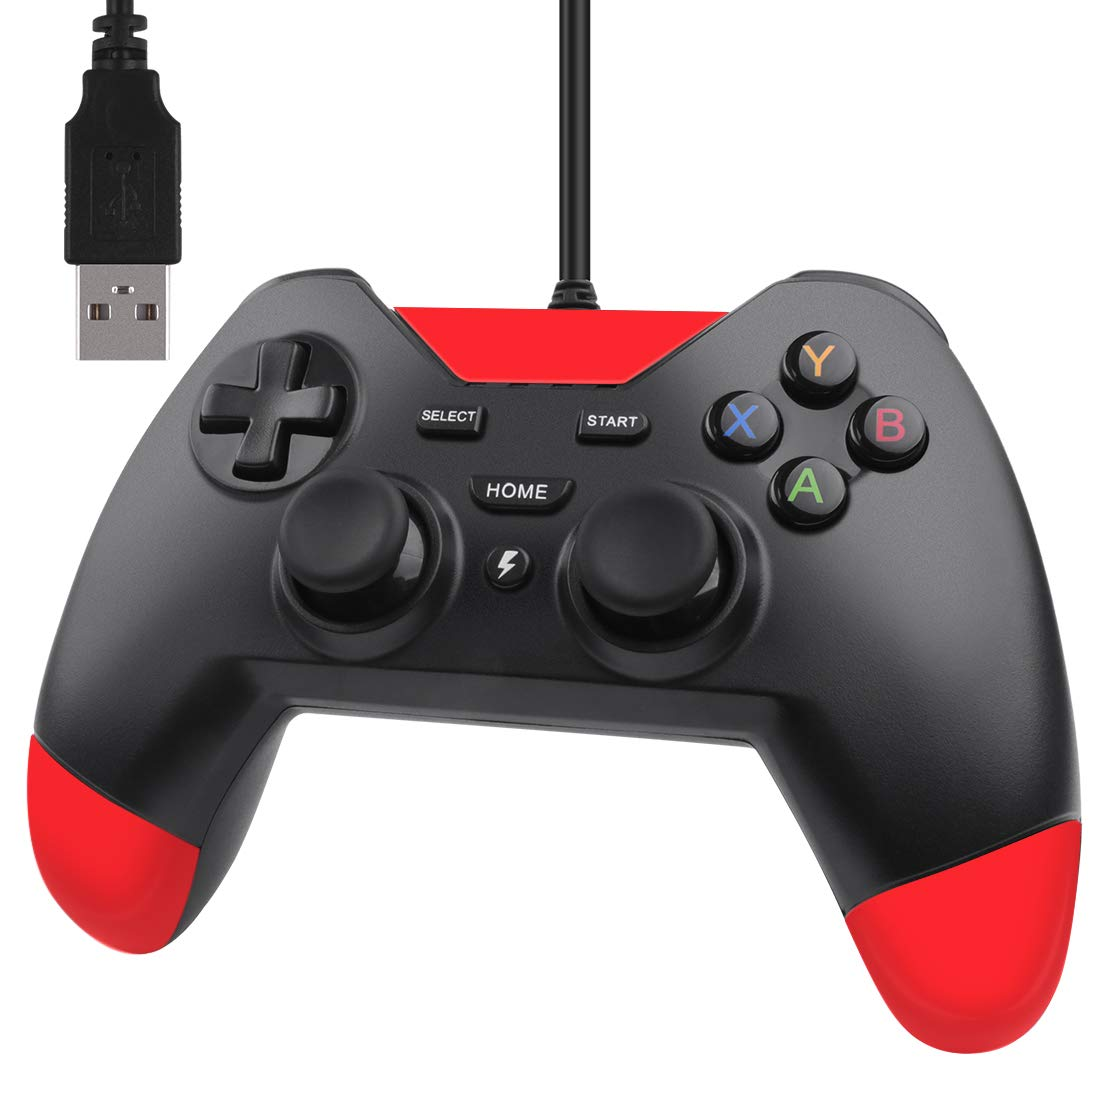 Mekela PC Controller Wired USB Gamepad Joystick for Playstation 3 PS3 PSVITA TV Box Steam Android Windows XP 7 8 10 with Dual-Vibration Tubro(Red)